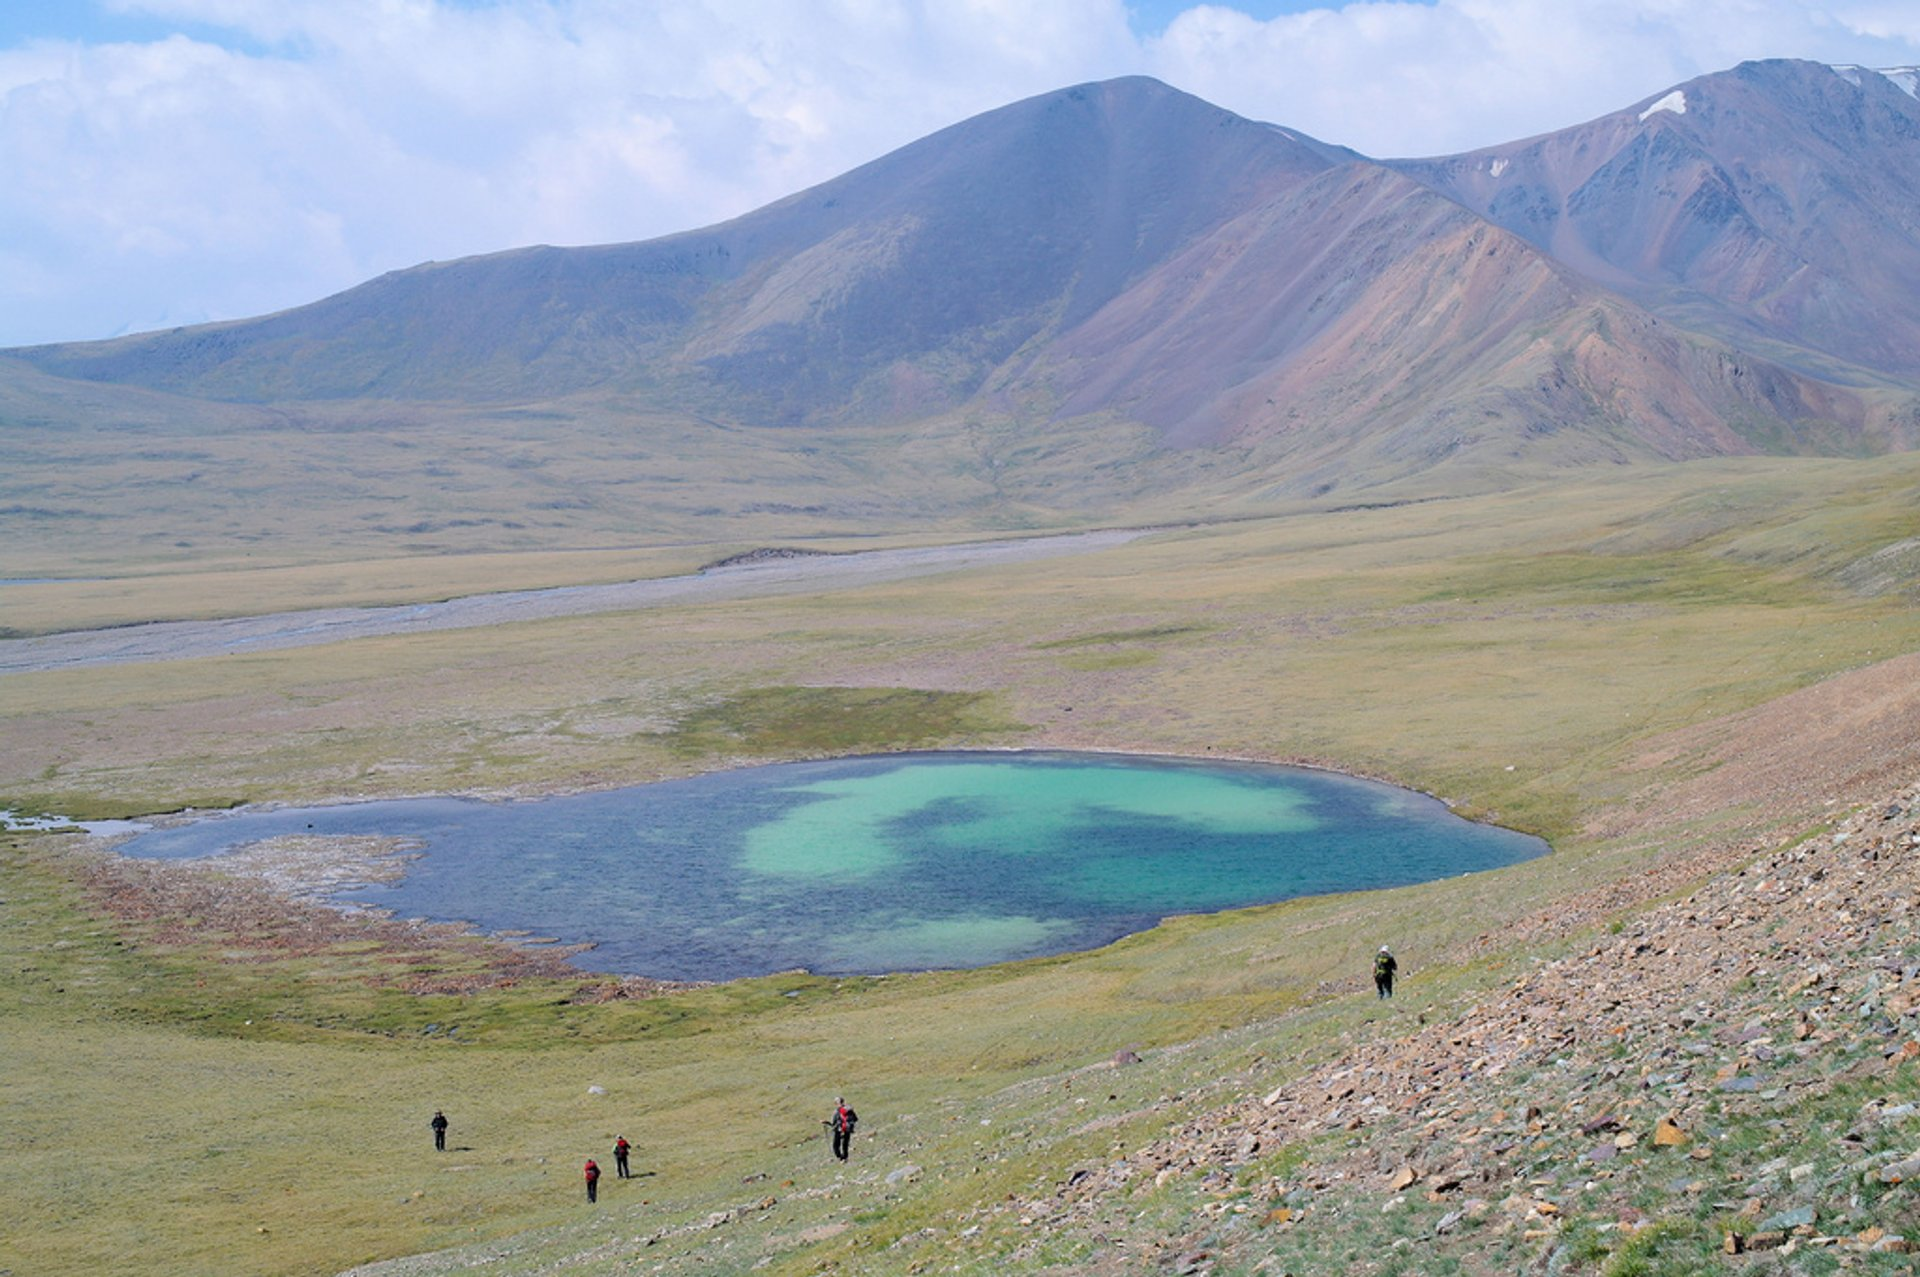 Trek out from roadhead to base camp, Tavan Bogd national park